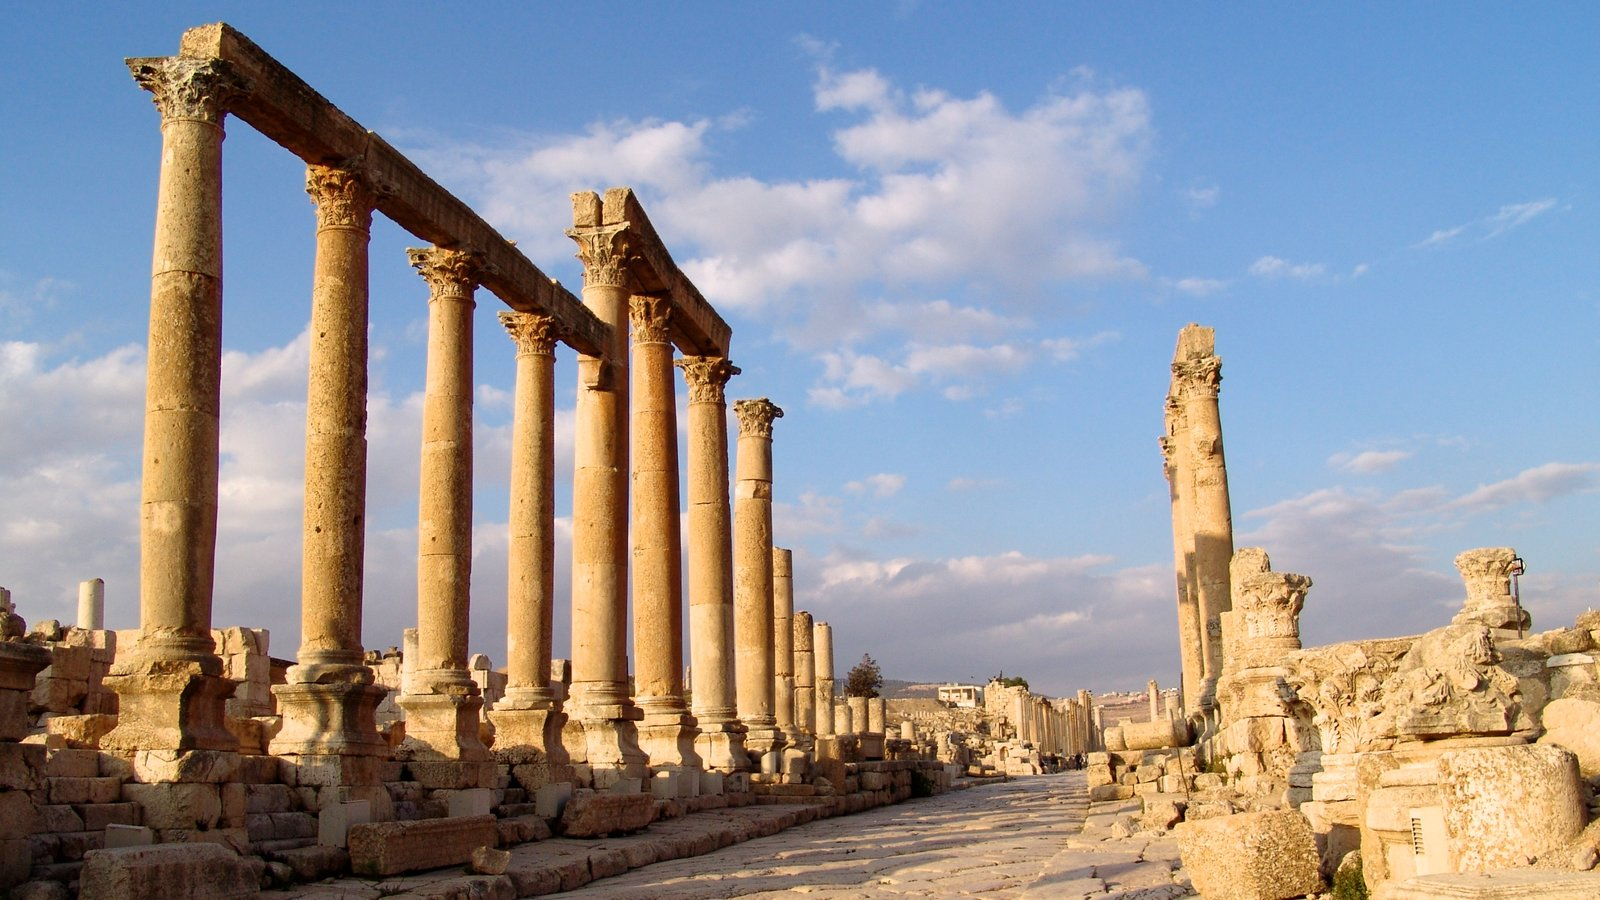 Jerash featuring heritage elements, heritage architecture and building ruins